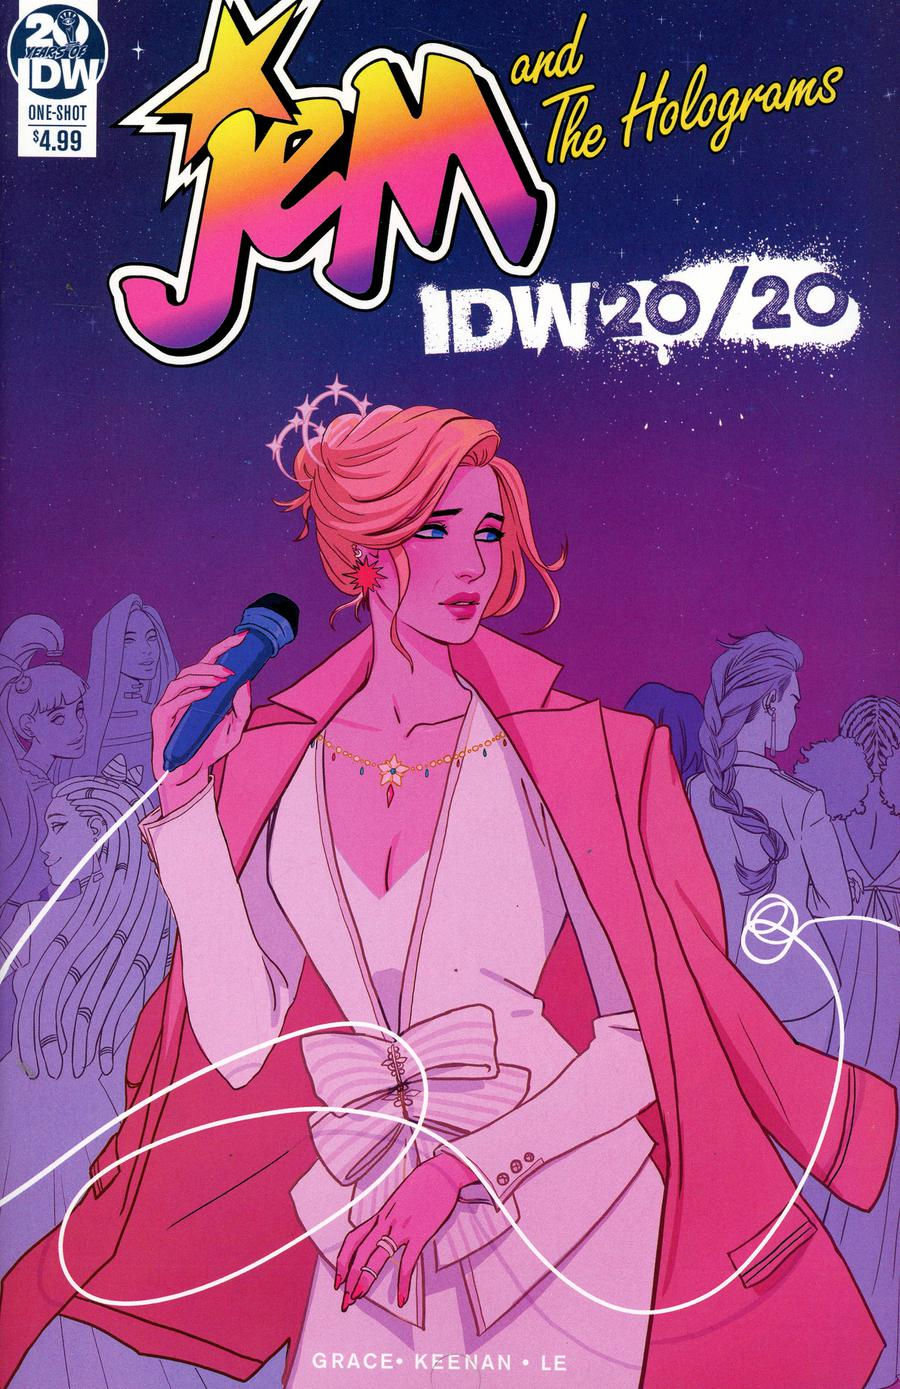 Jem And The Holograms IDW 20/20 Cover A Regular Siobhan Keenan Cover